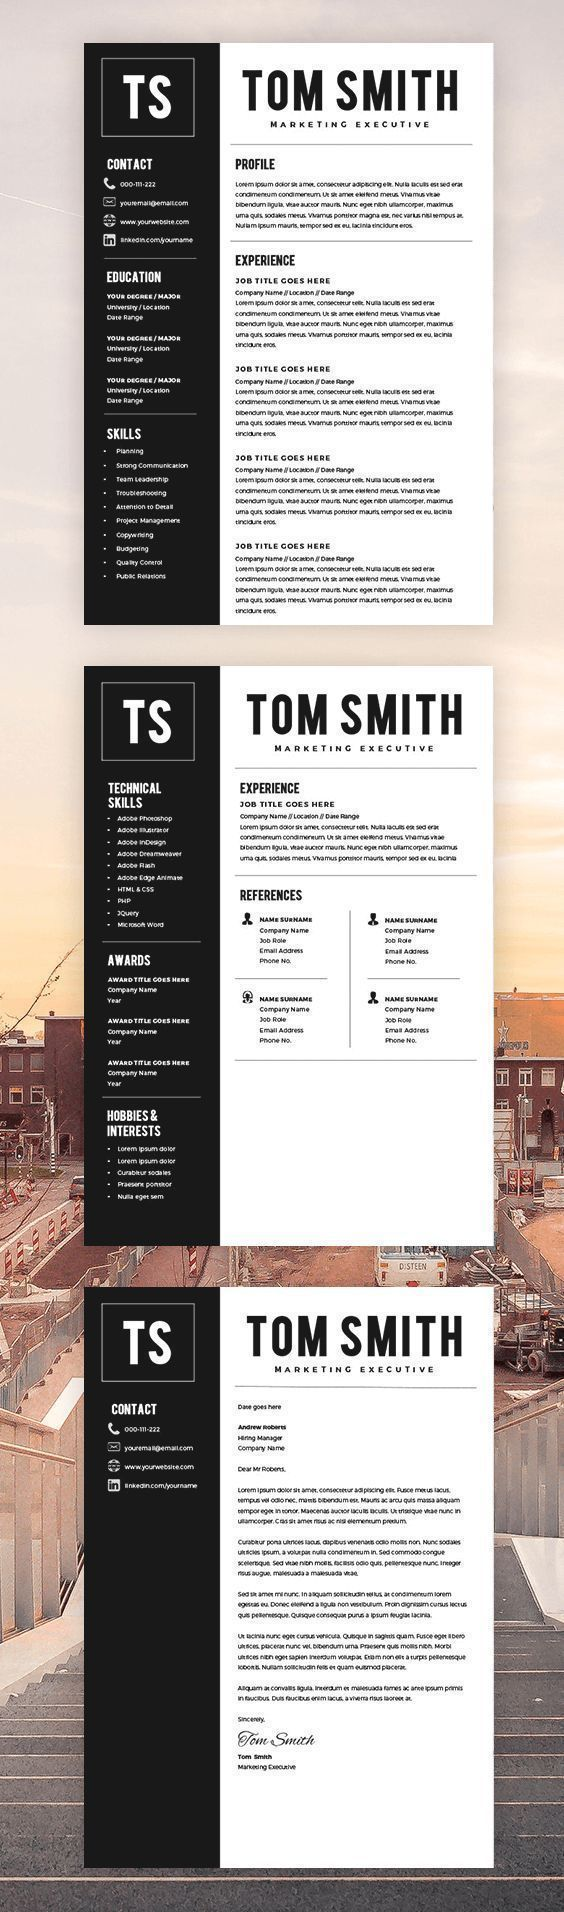 Two Page Resume Template   Resume Builder   CV Template   Free Cover Letter    MS  Creative Resume Builder